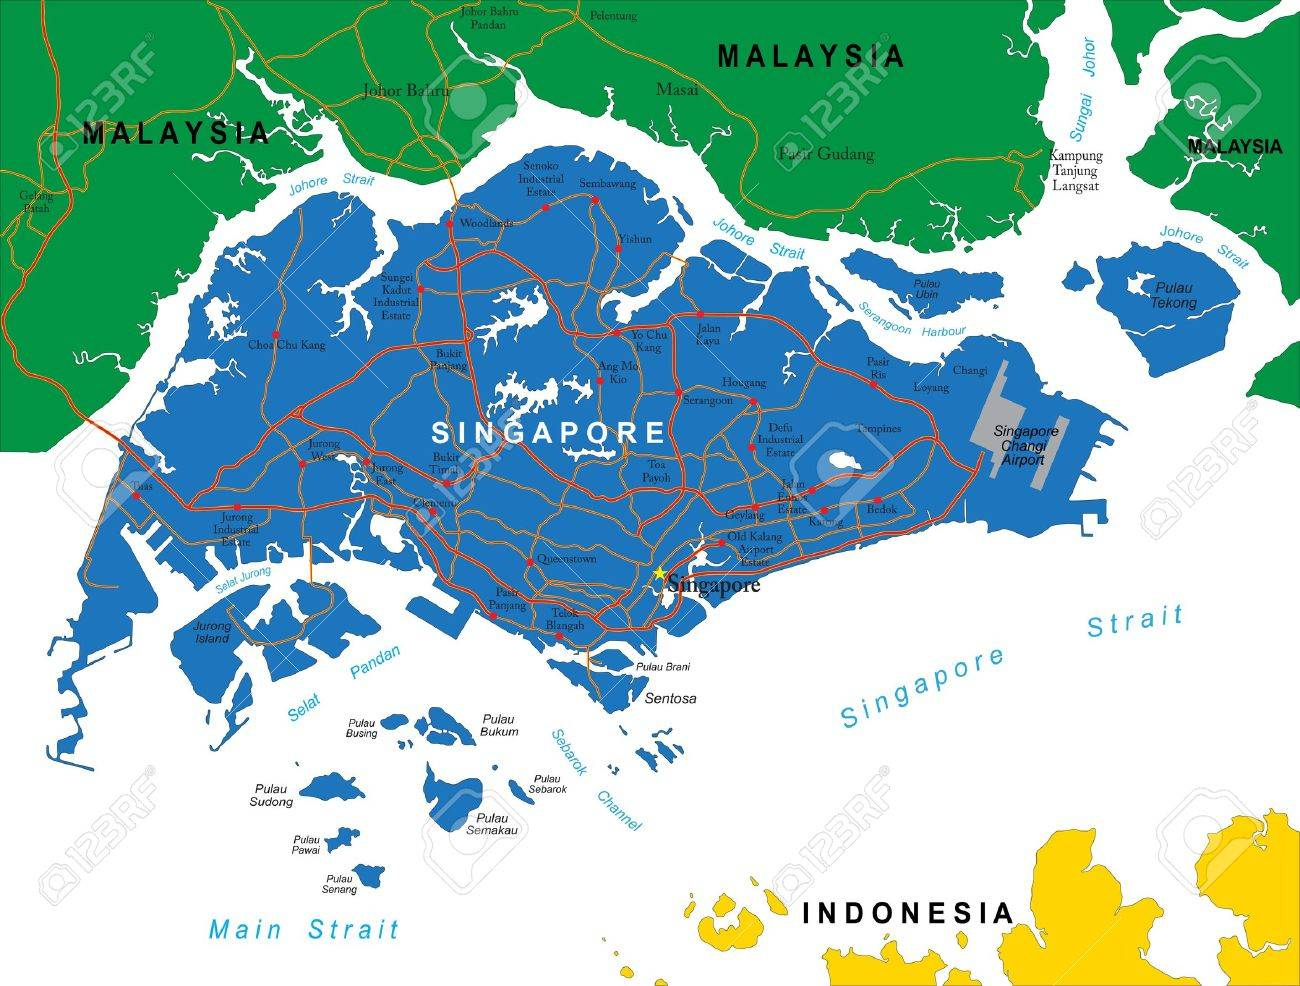 Singapore Map Royalty Free Cliparts Vectors And Stock - Singapore map vector